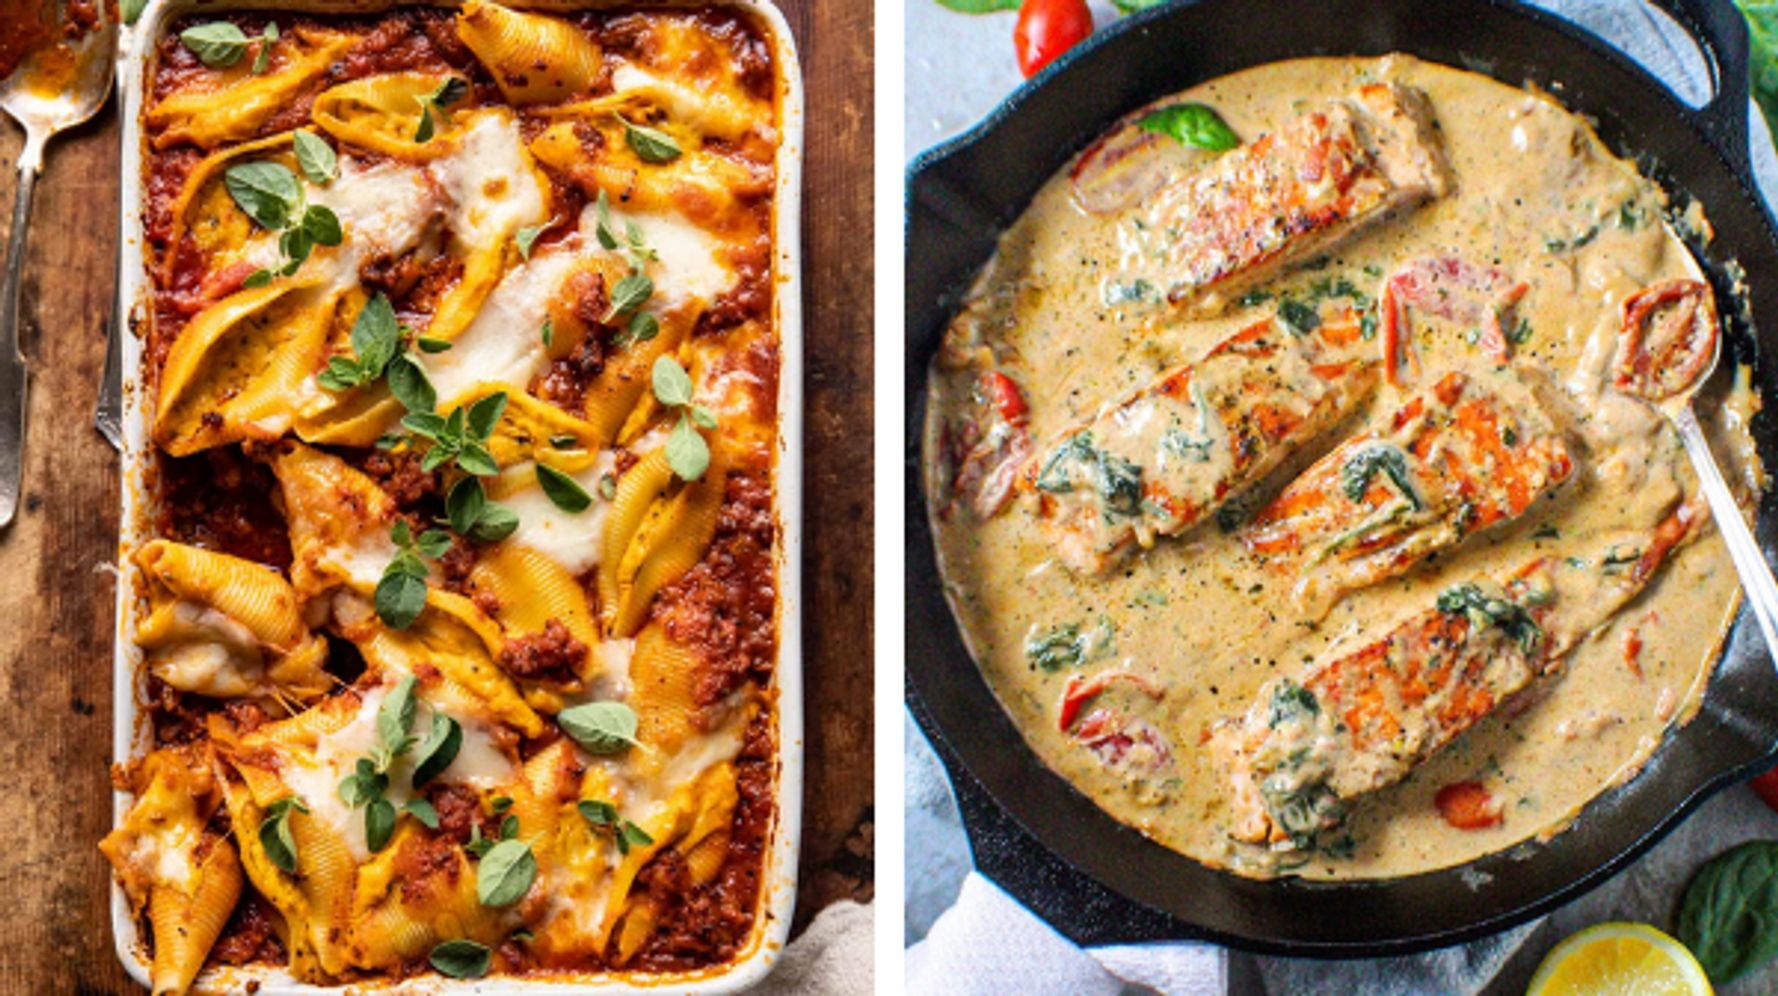 The 10 Most Popular Instagram Recipes From October 2020